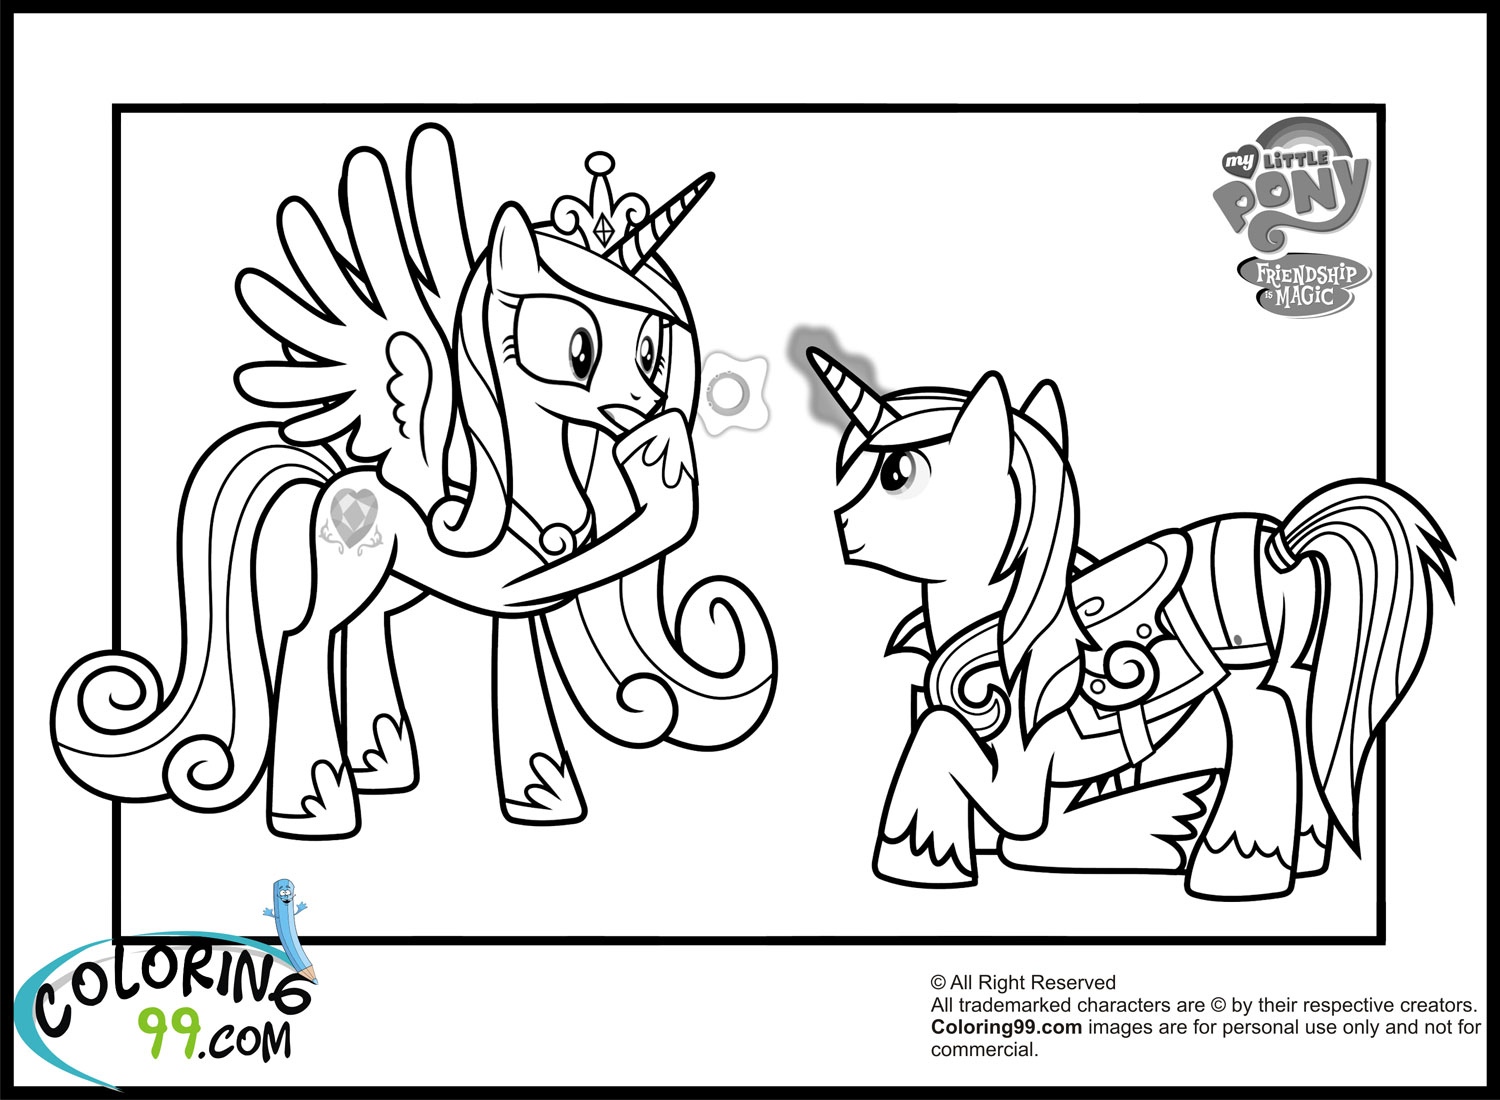 Coloring pages of princess cadence - Coloring Pages Of Princess Cadence 14